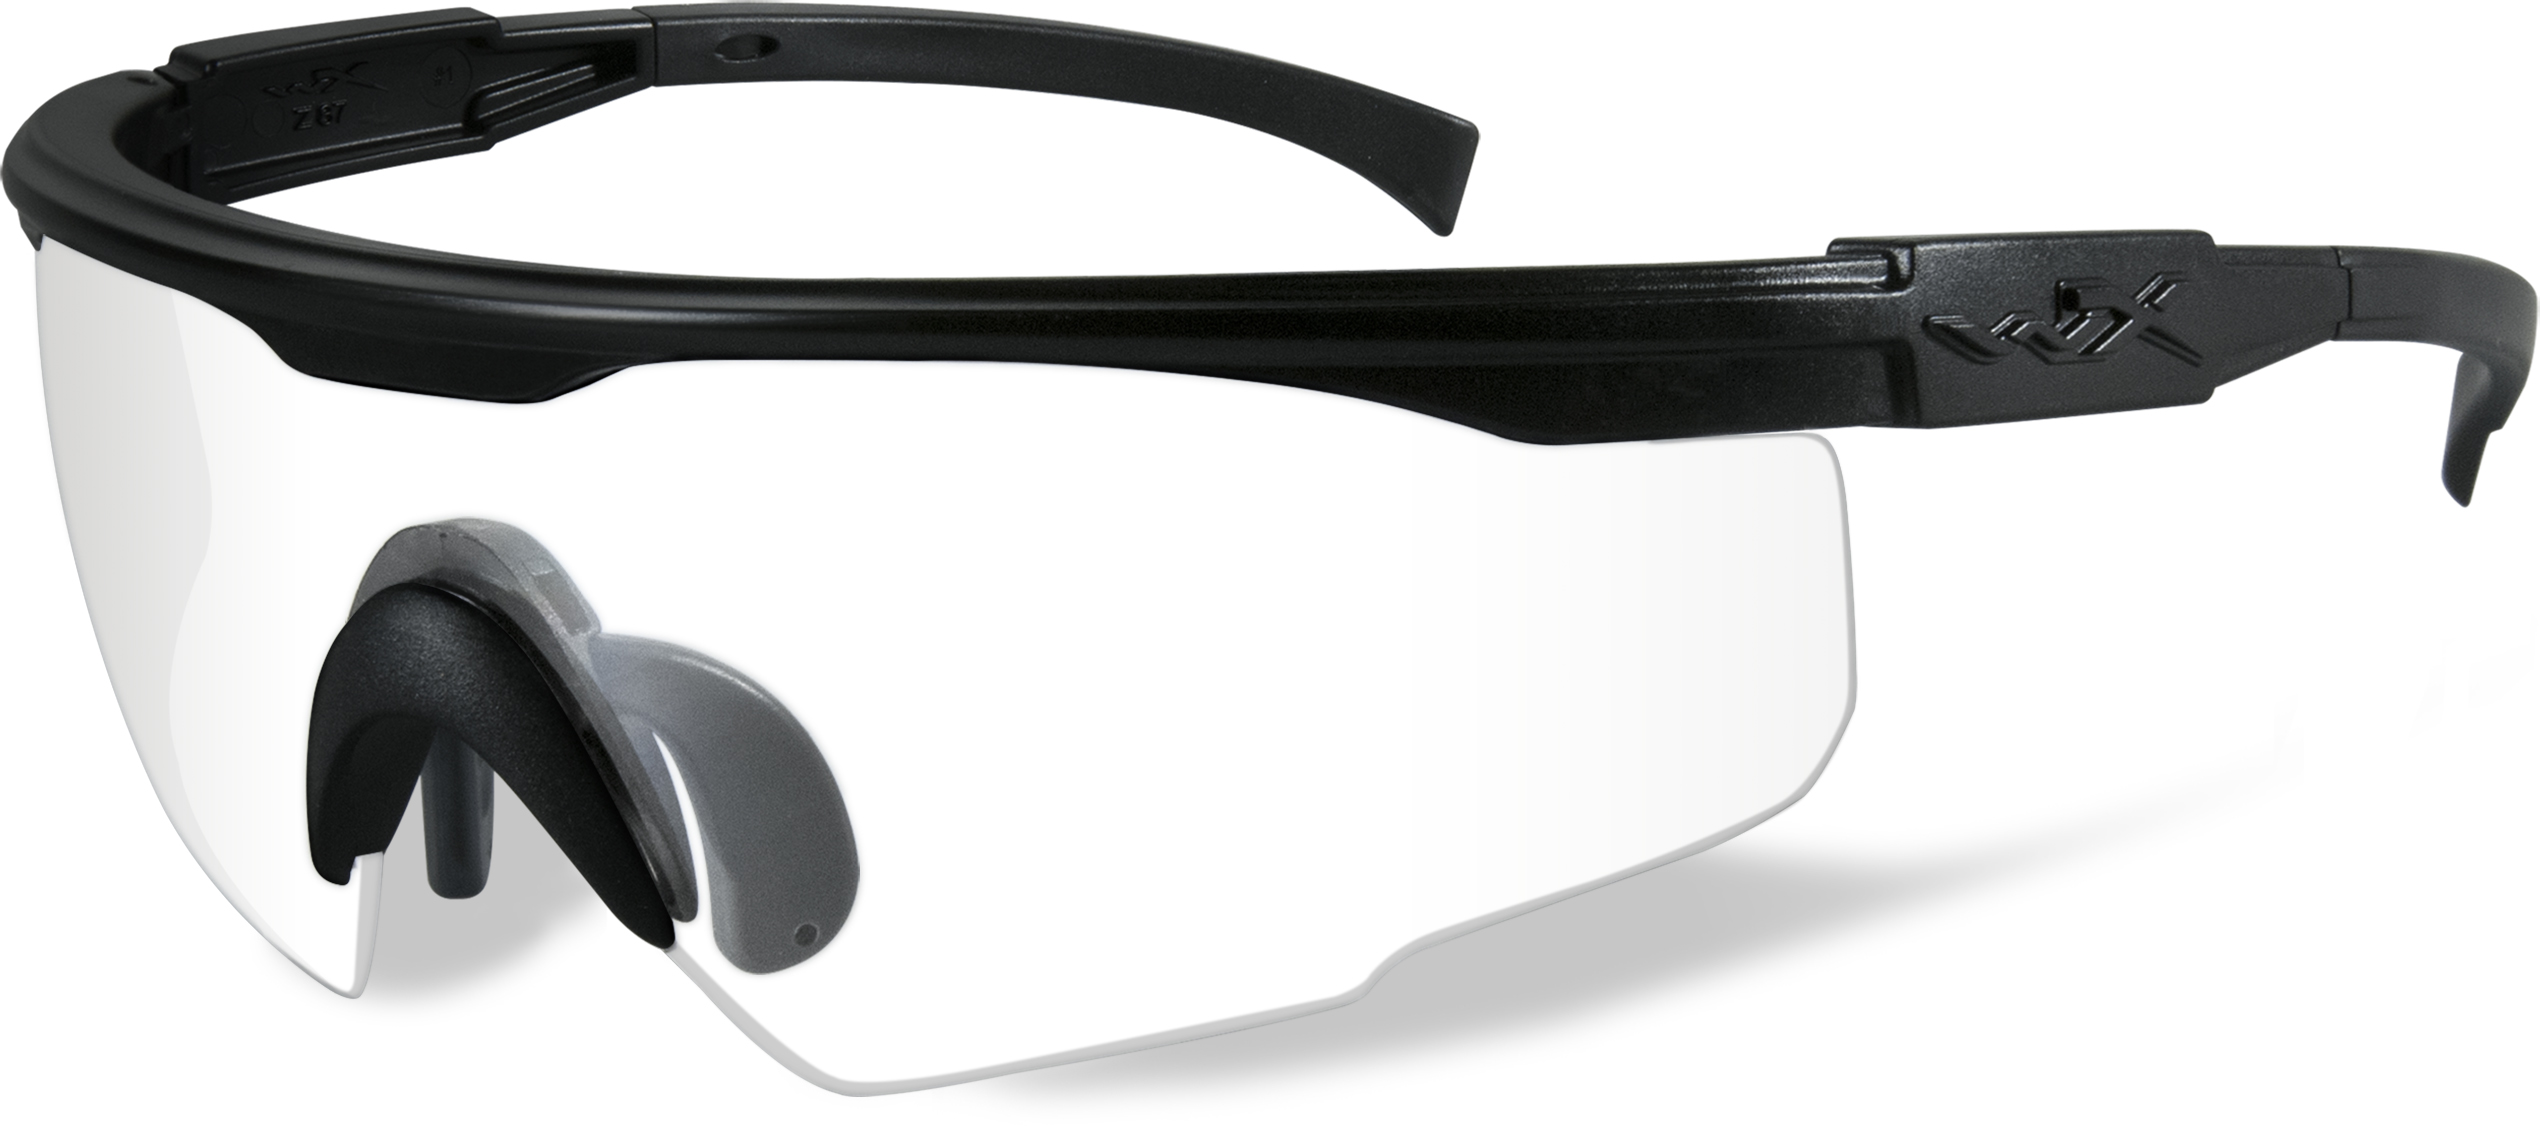 096523456f Wiley X PT-1 Interchangables Sunglasses w  Interchangeable lenses ...